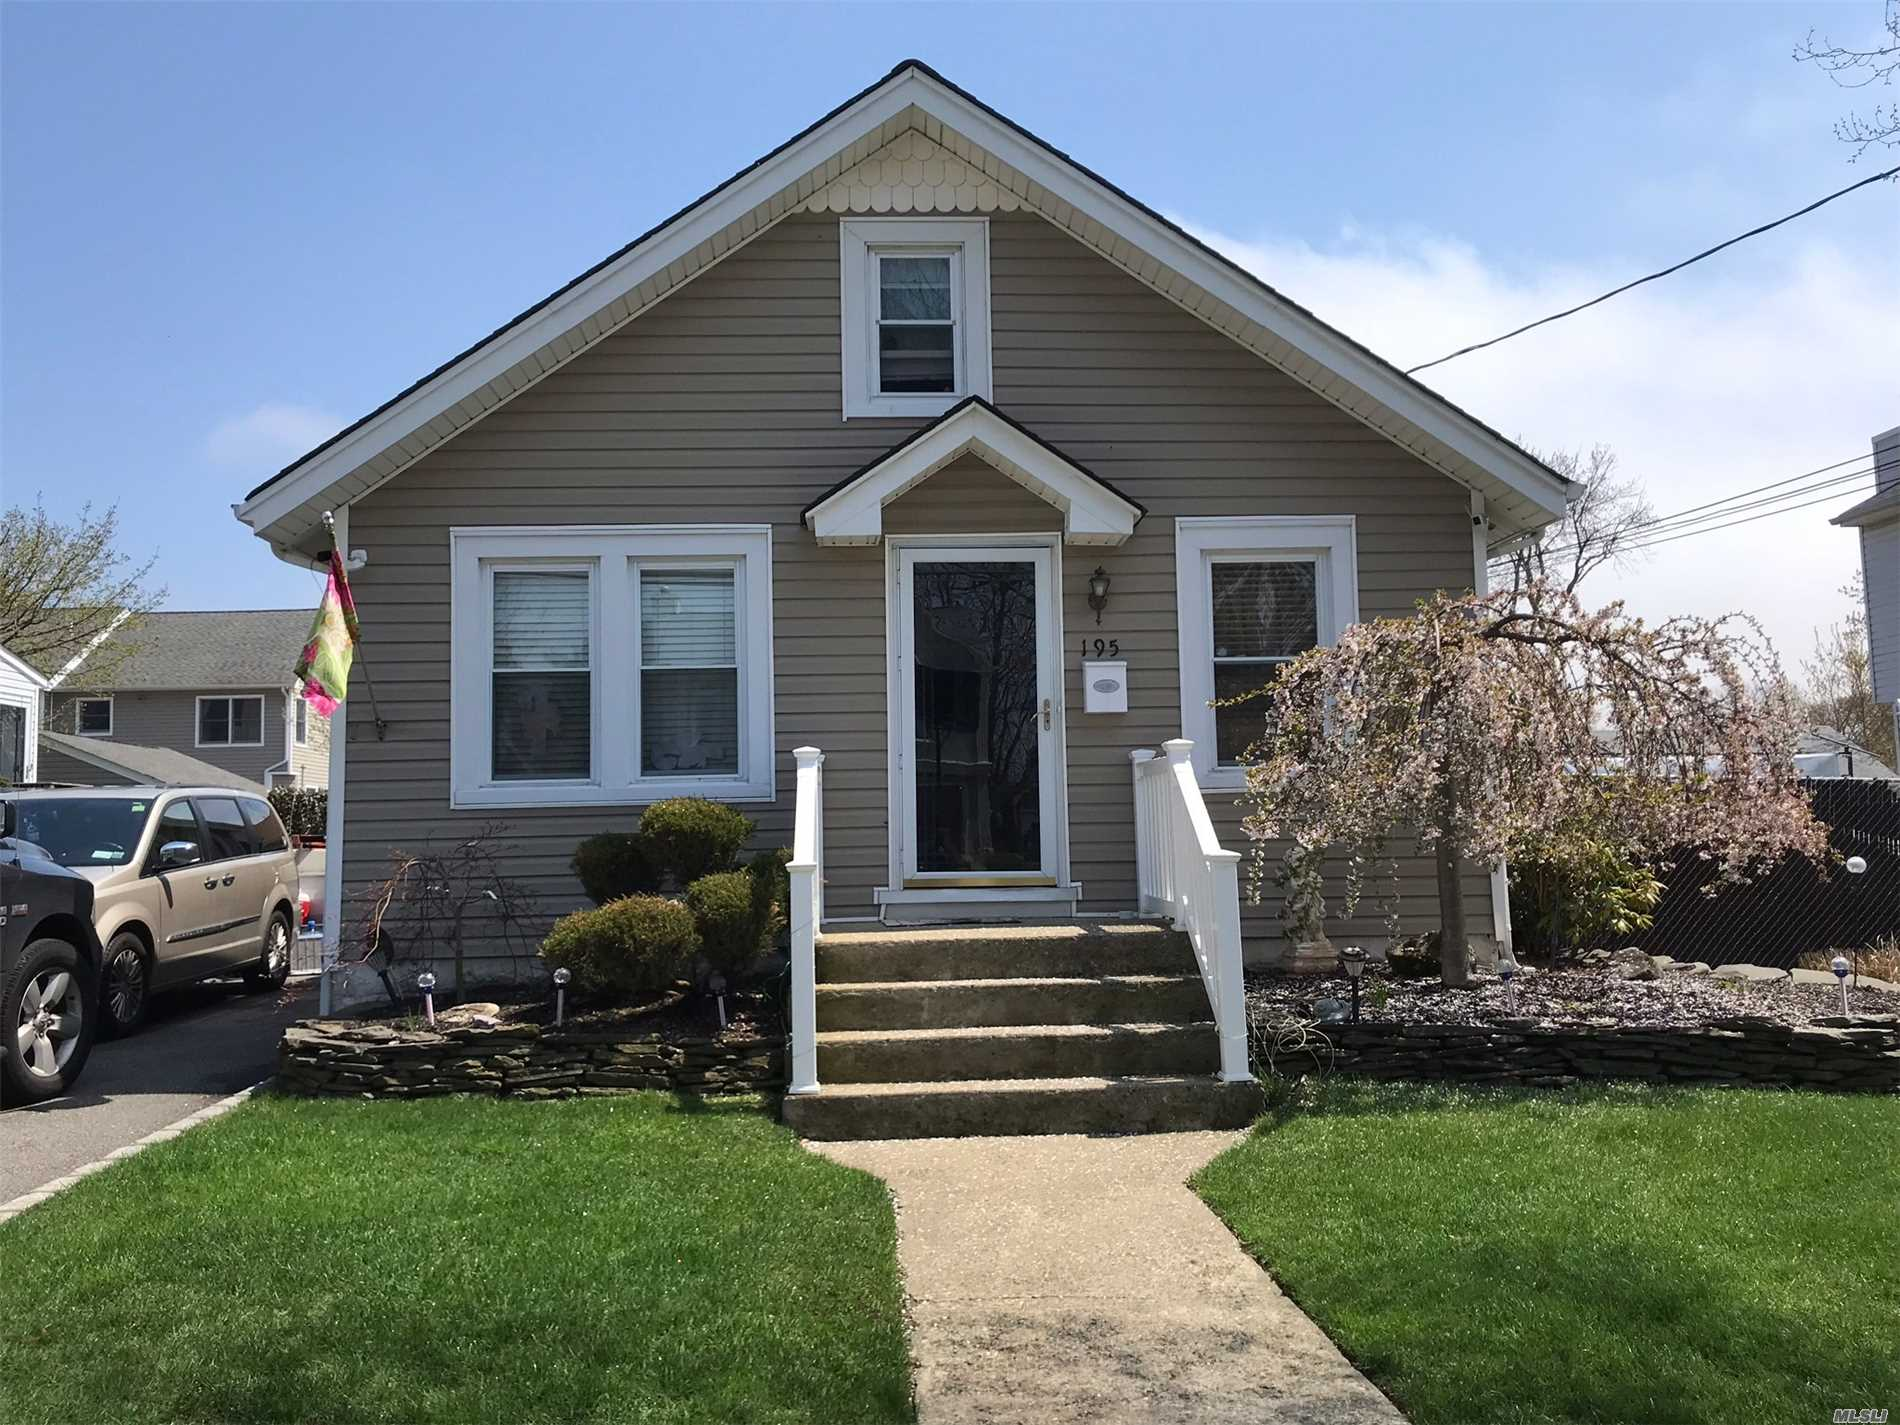 Photo of home for sale at 195 Park Ave, Freeport NY